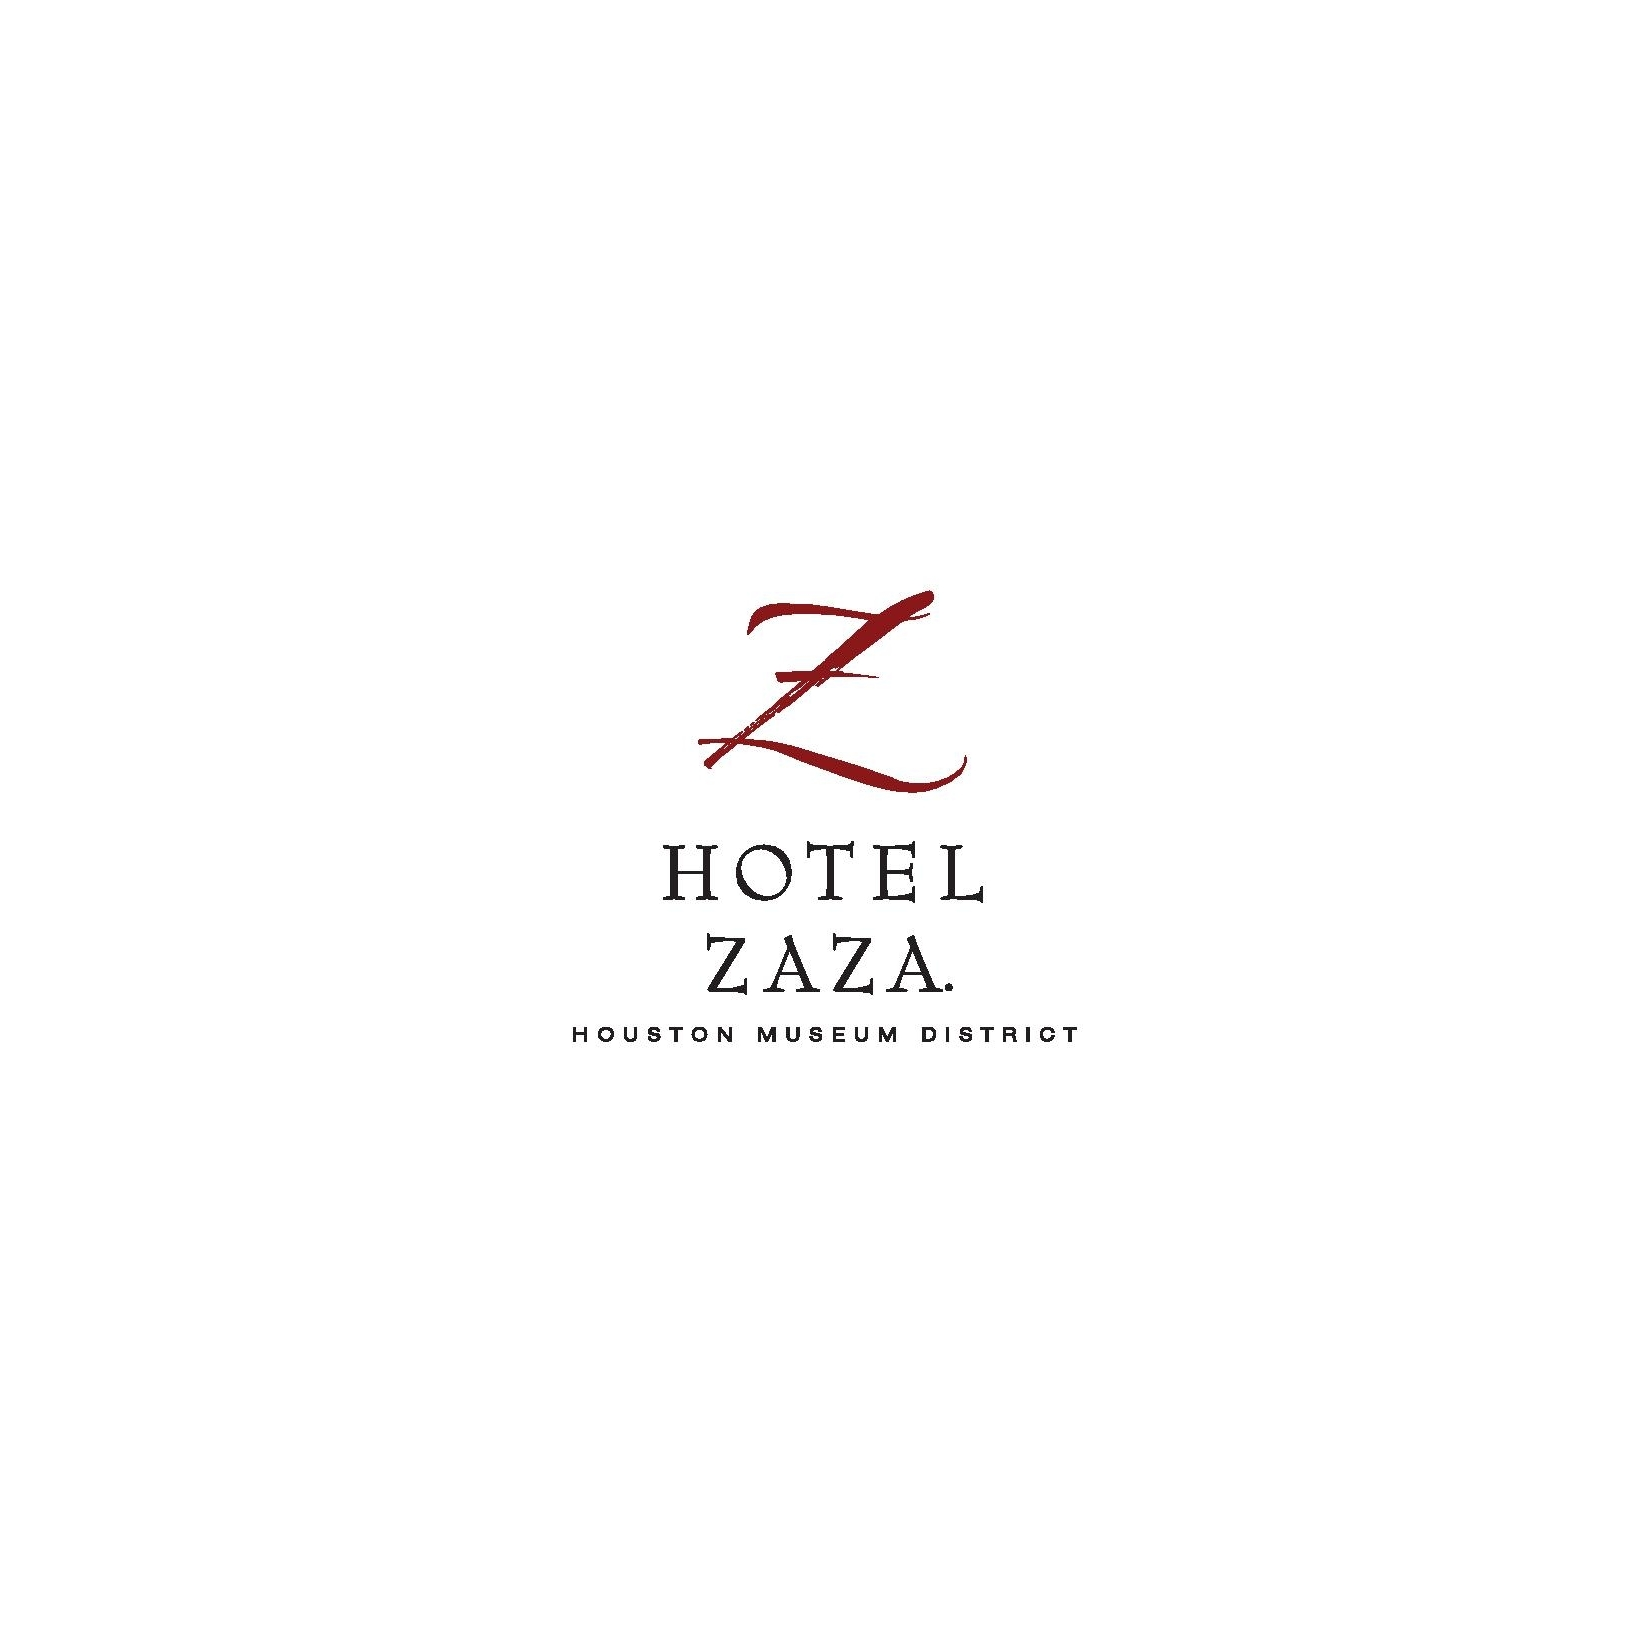 Hotel in TX Houston 77005 Hotel ZaZa Houston 5701 Main Street  (713)526-1991